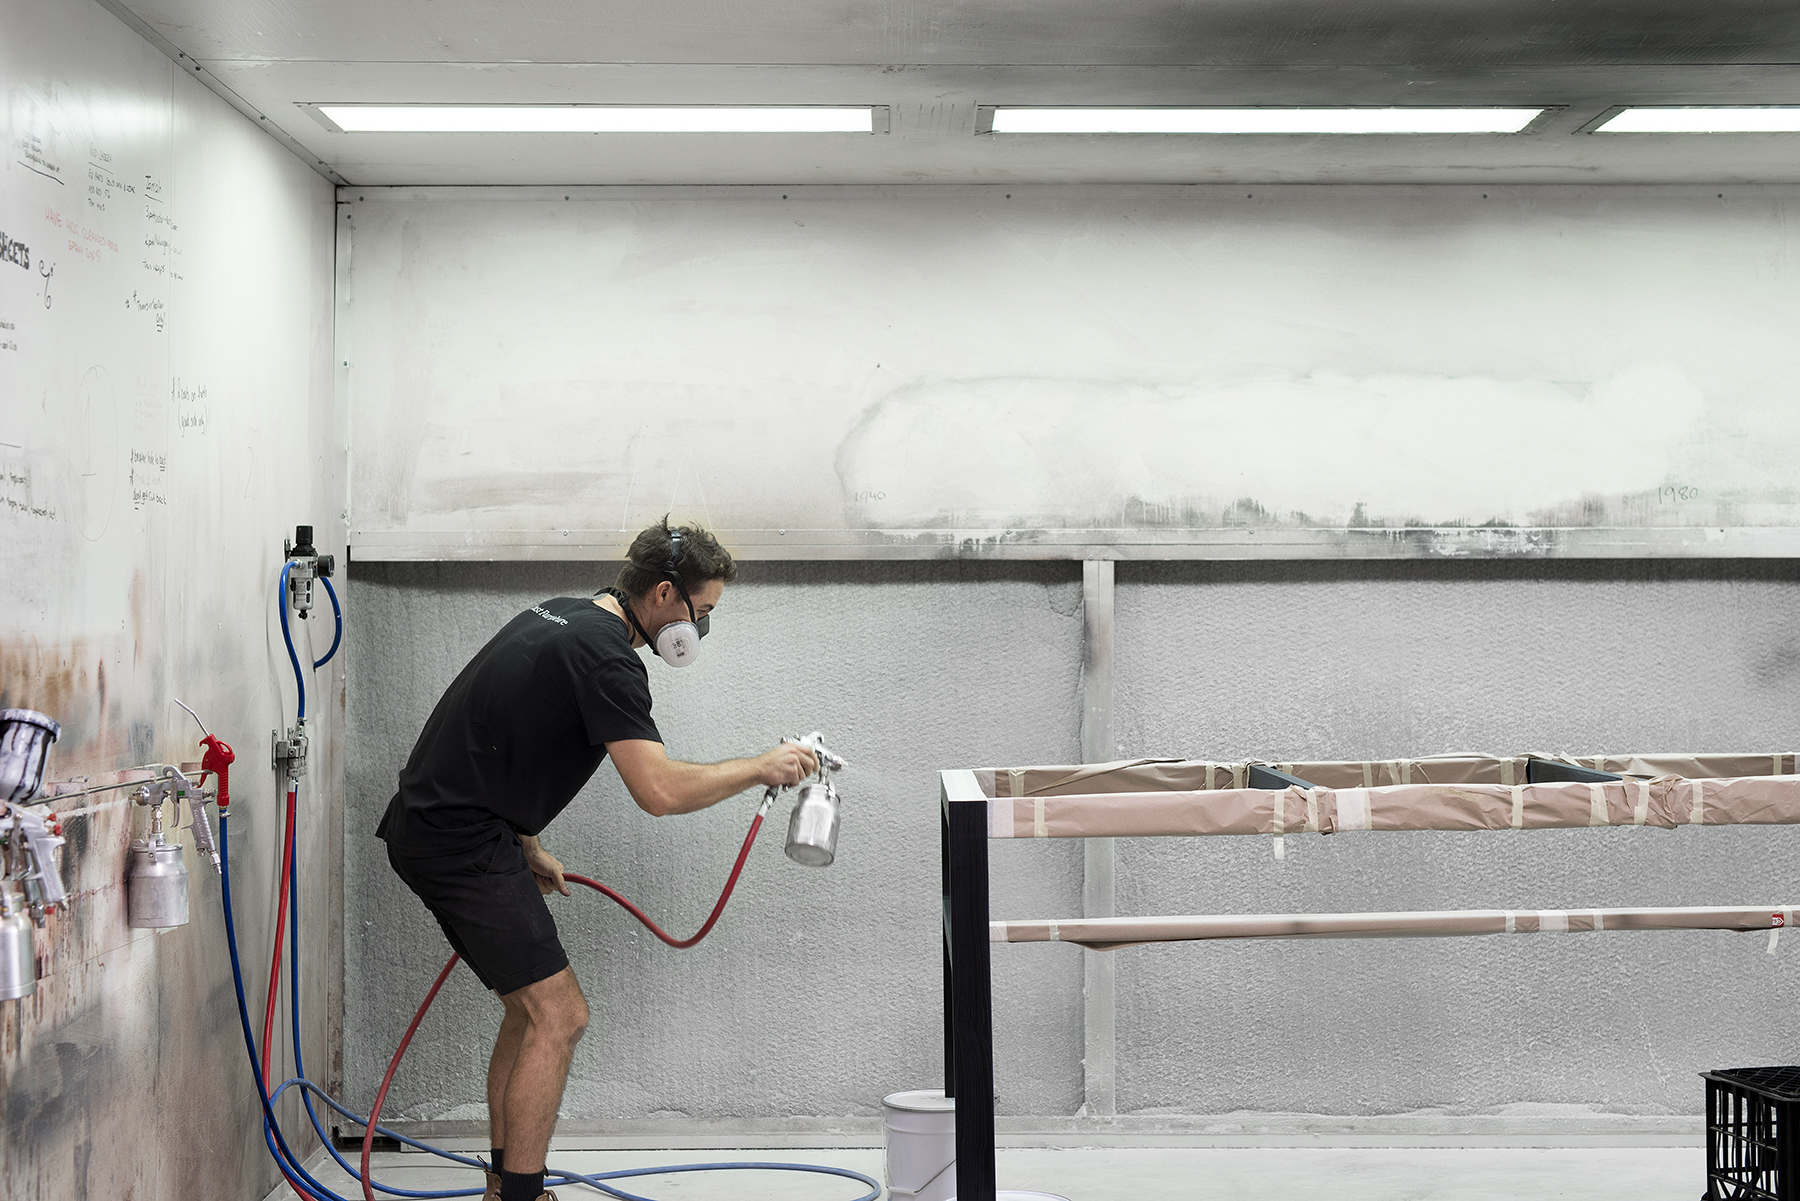 The spraybooth is located in the middle of the workshop. Rory spays a coat of colour onto a Willox table frame to stain the wood. The table will then need to be sanded and another coat of colour applied.